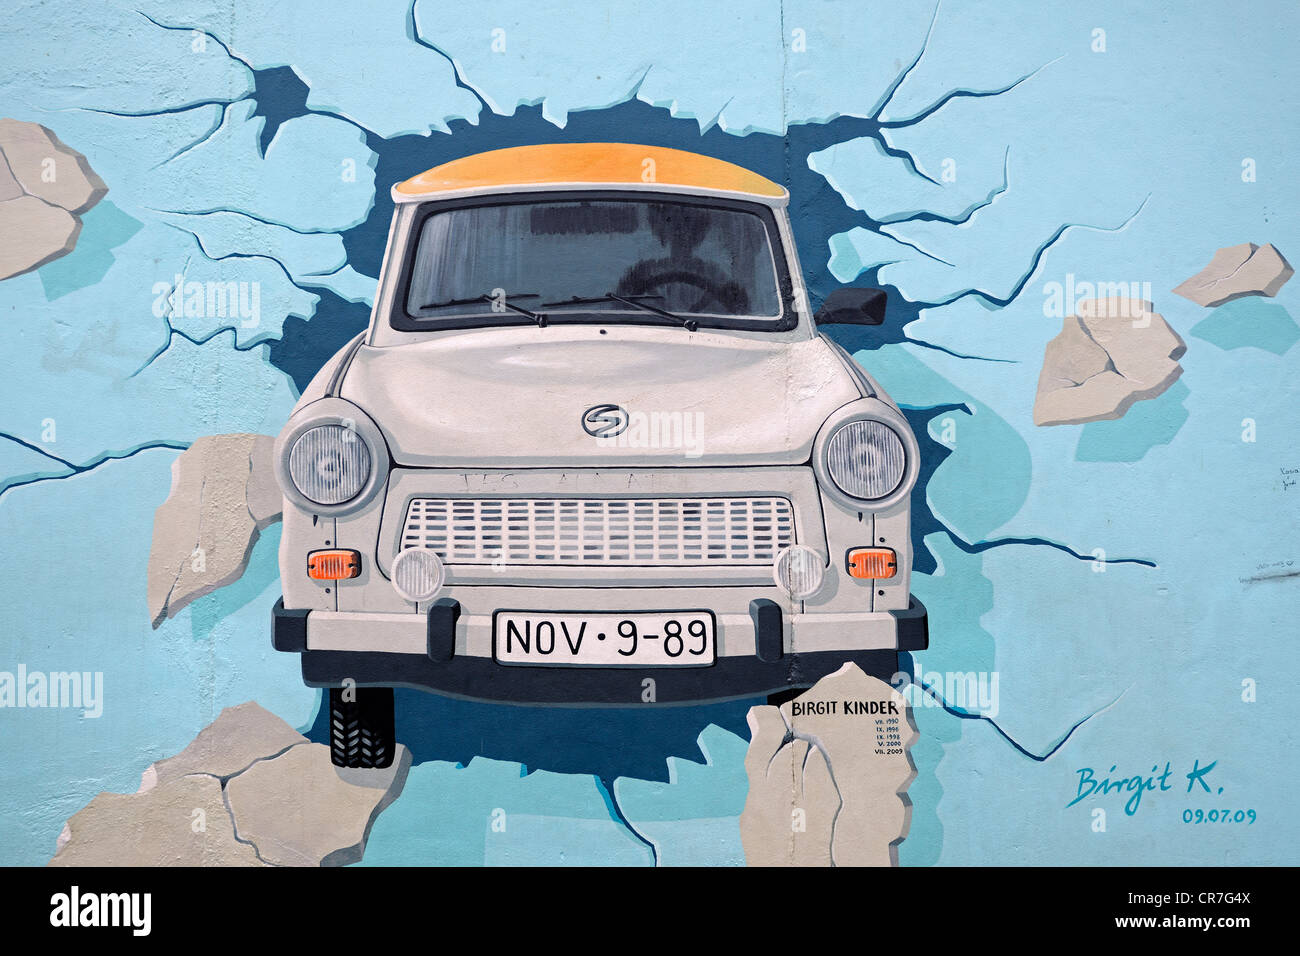 berlin wall mural stock photos berlin wall mural stock images test the rest trabant breaking through the berlin wall mural by birgit kinder